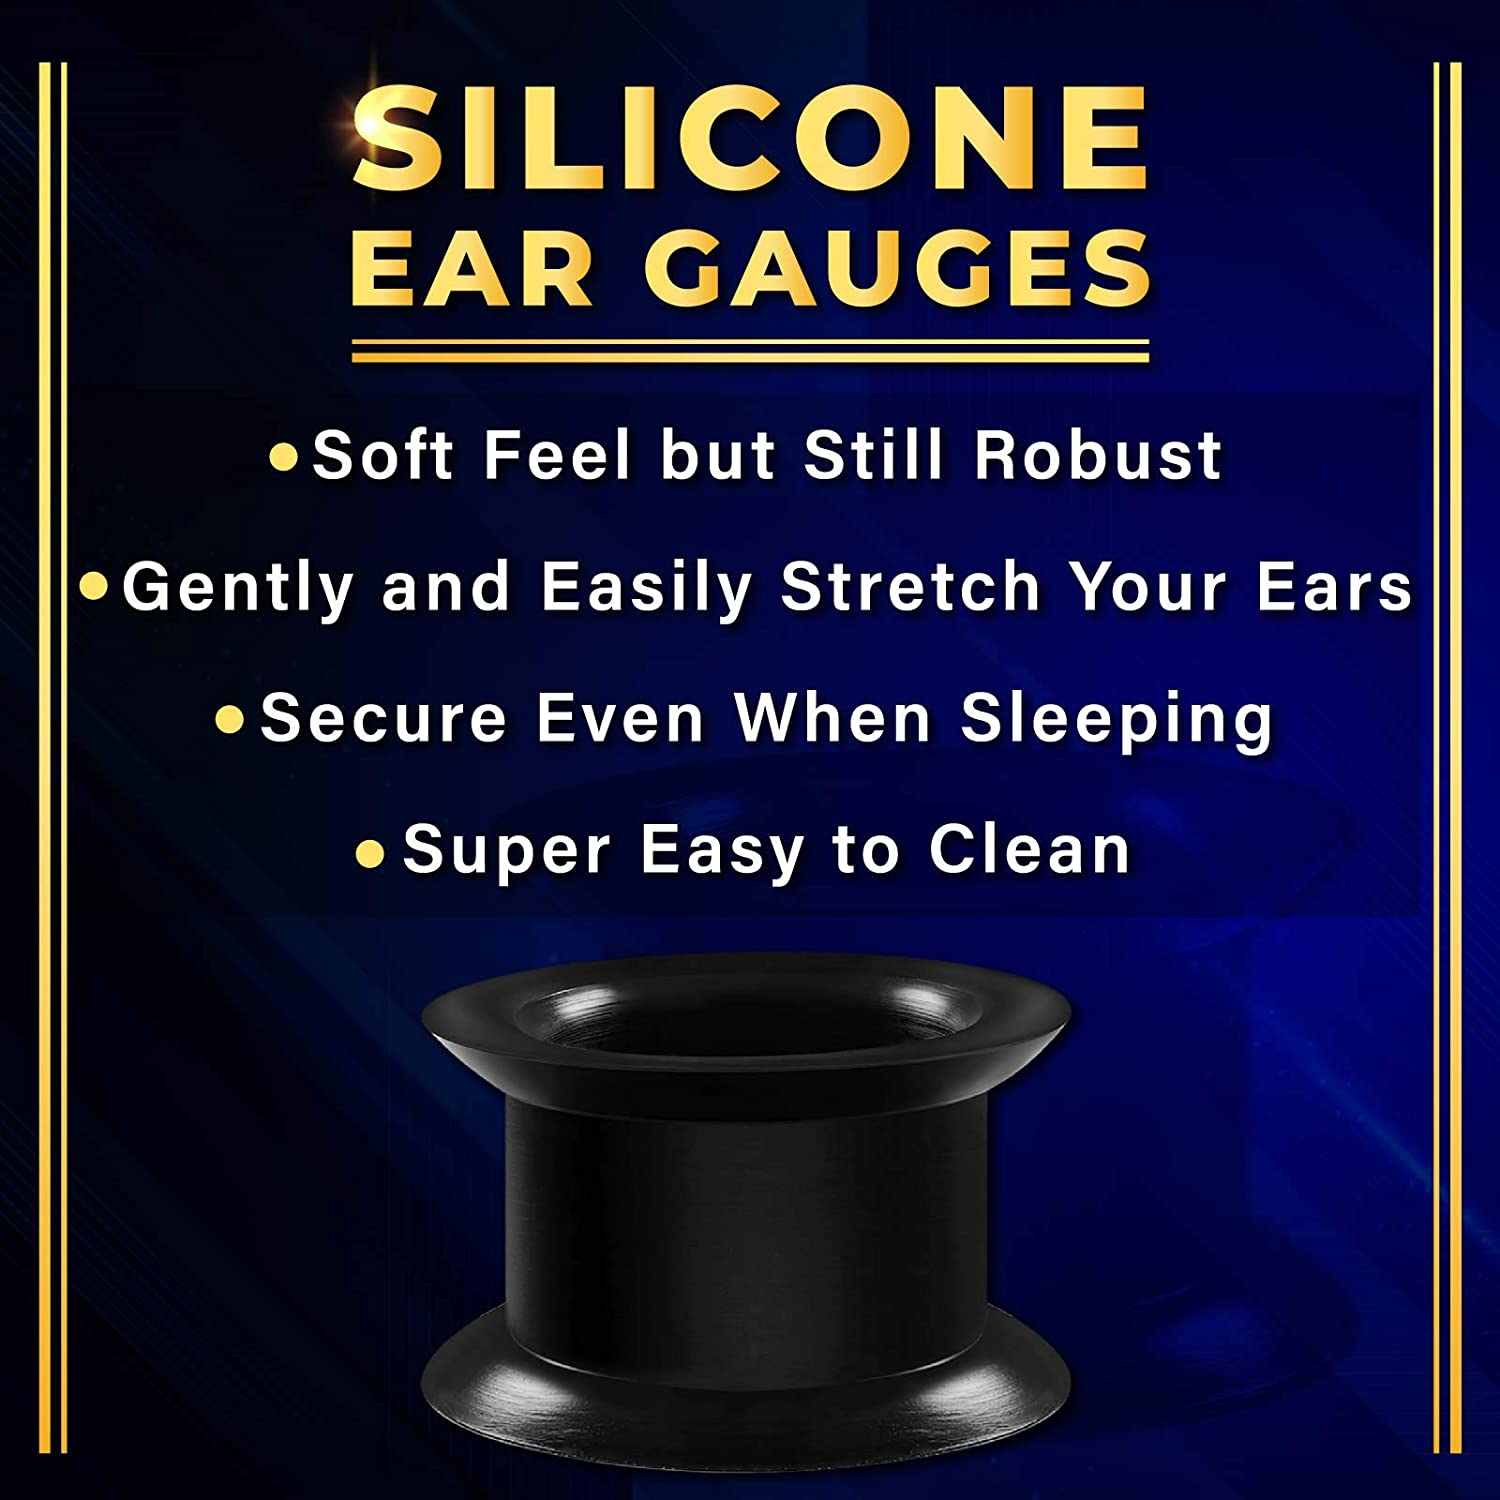 BIG GAUGES 2 Pairs Silicone Black & White Double Flared Flesh Piercing Jewelry Ear Stretching Lobe Plug Tunnel Earring